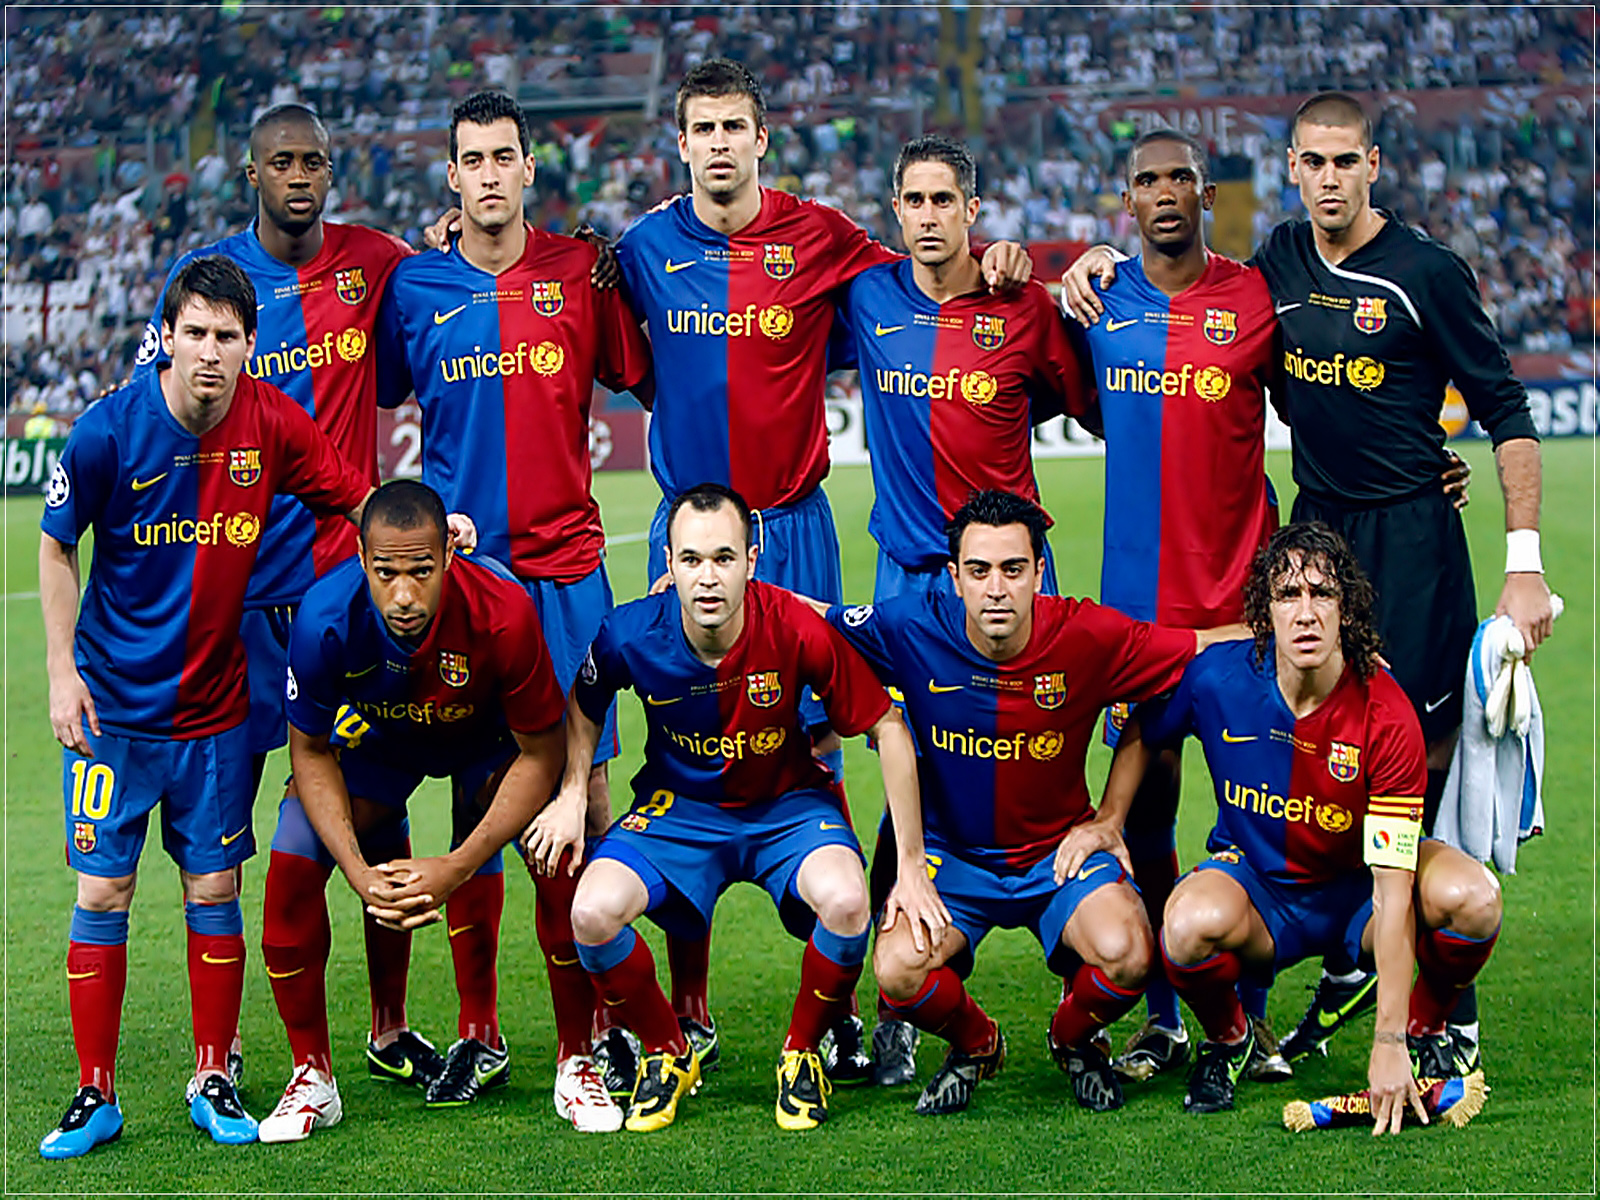 all sports celebrities fc barcelona players new hd wallpapers 2013 barcelona new players